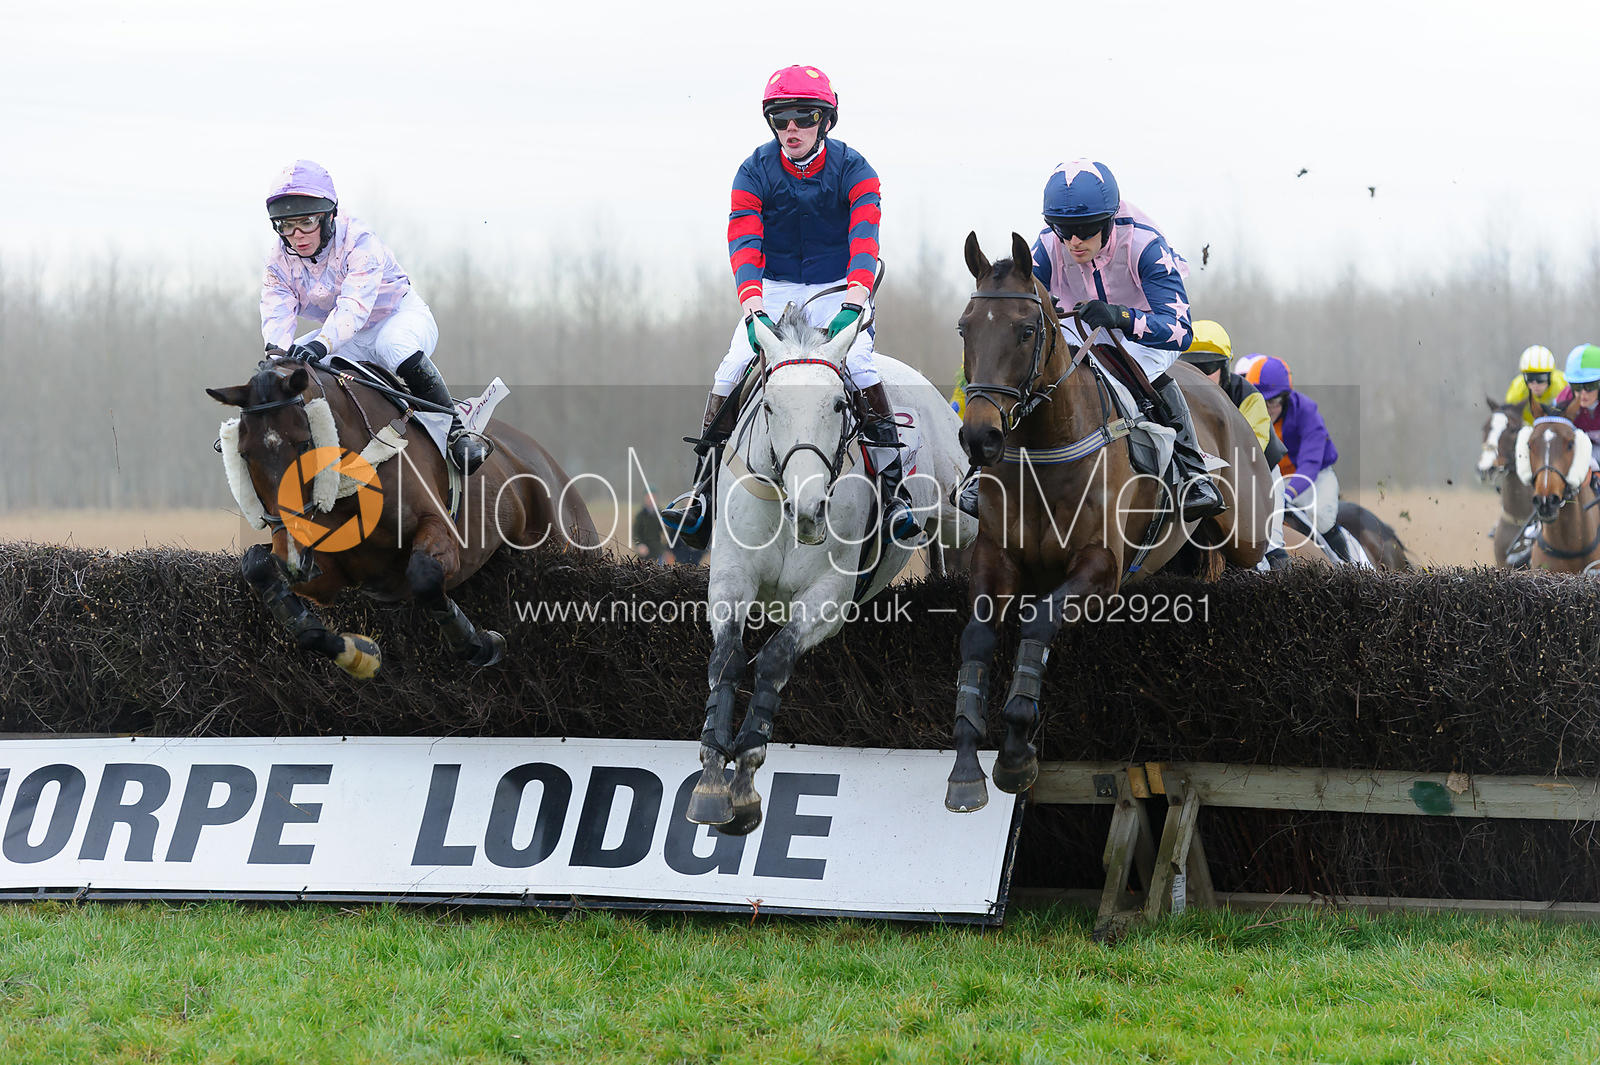 Race 3 - Novice Riders - Midlands Area Club Point-to-point 2017, Thorpe Lodge 29/1